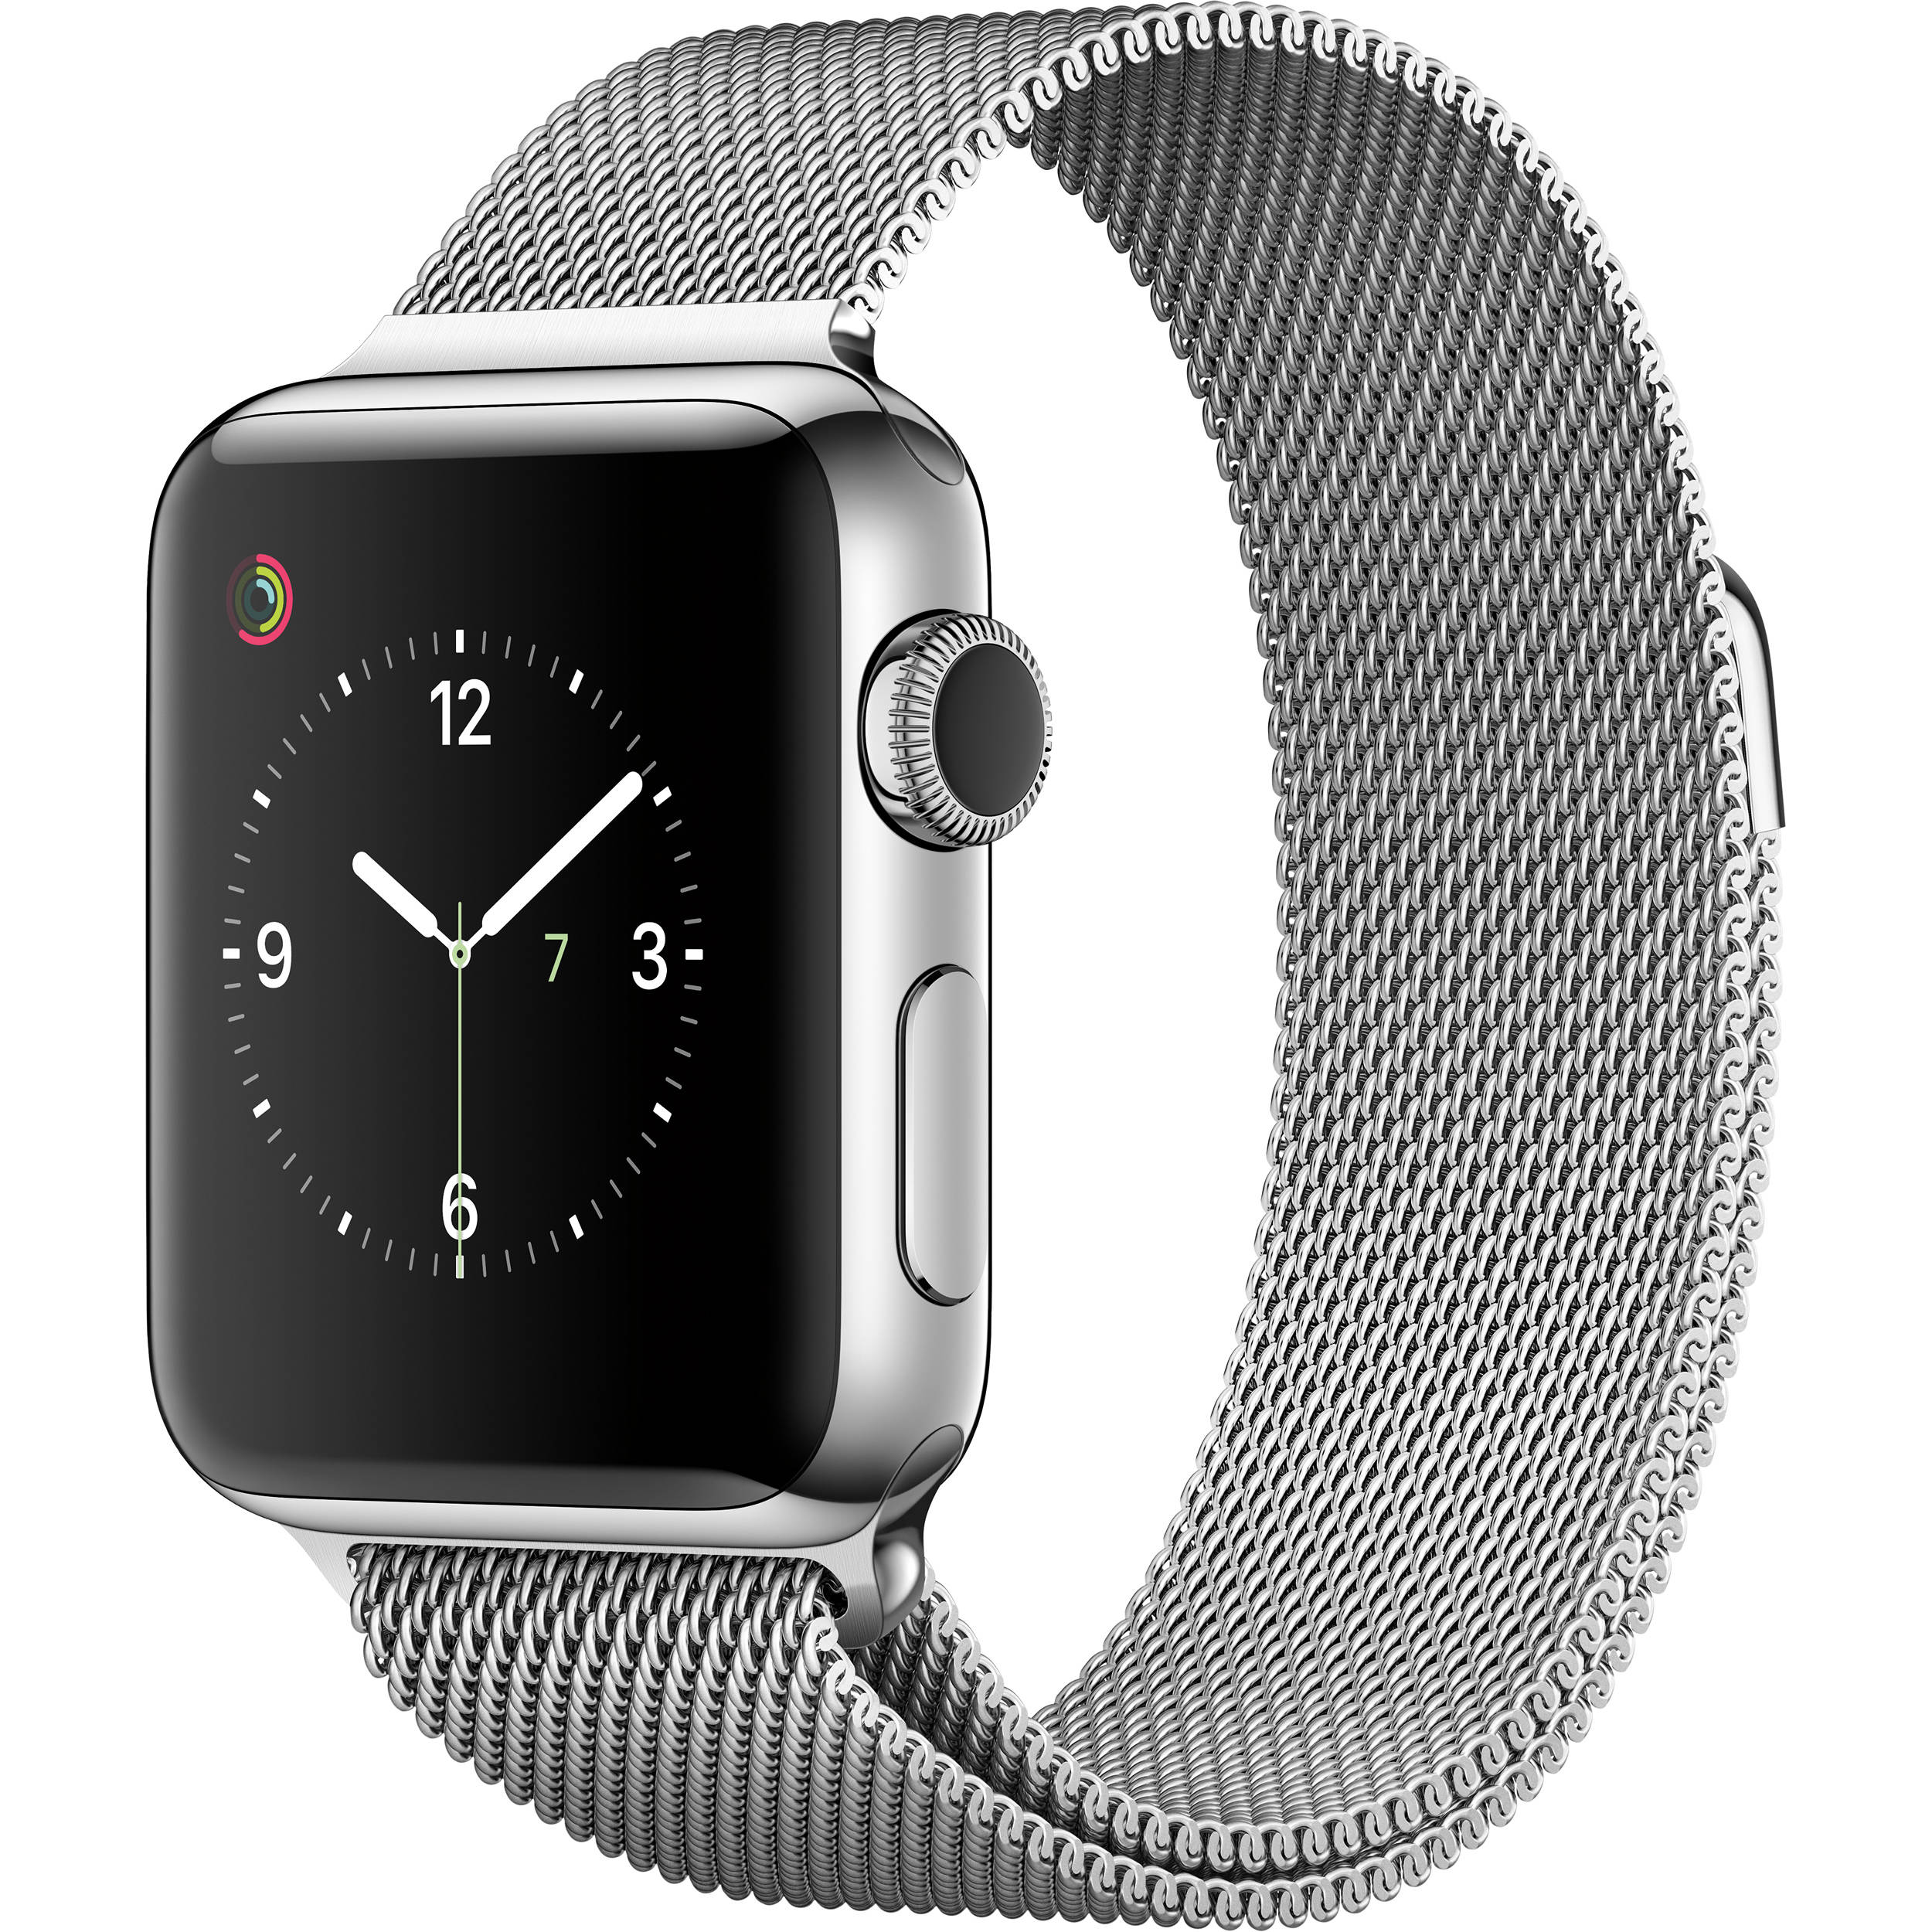 Apple Watch Series 2 Latest News Images And Photos Crypticimages Spigen Tough Armor Case For 42mm 3 Silver